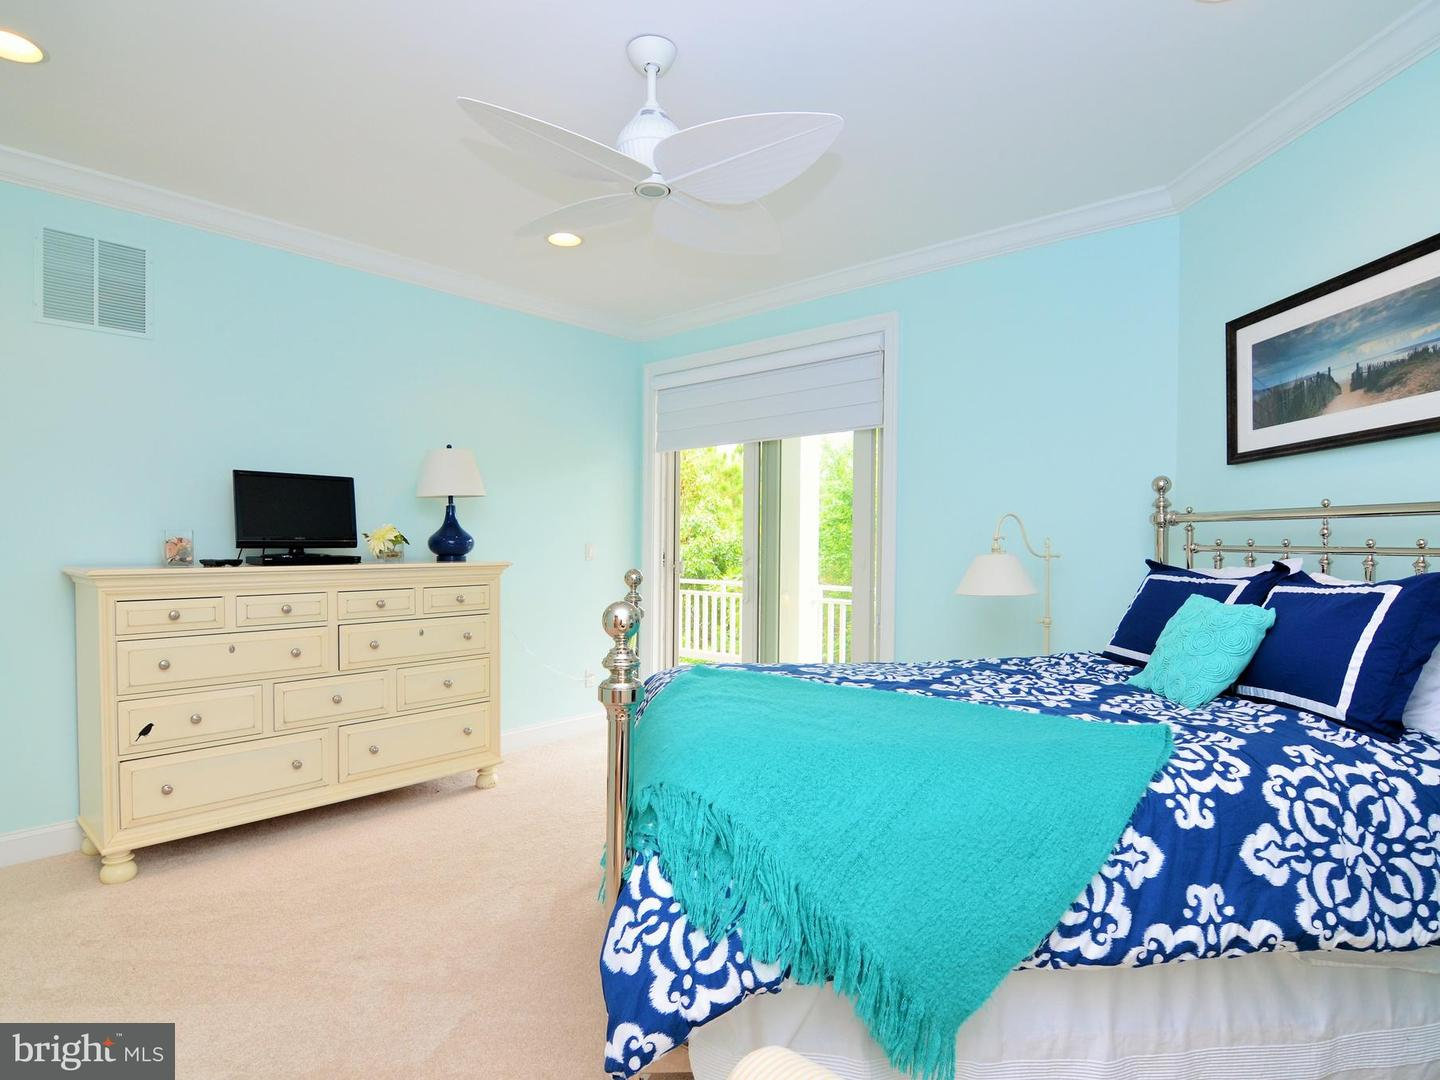 1002293530-300500807400-2018-09-25-15-08-25 31 Hall Ave | Rehoboth Beach, De Real Estate For Sale | MLS# 1002293530  - Suzanne Macnab